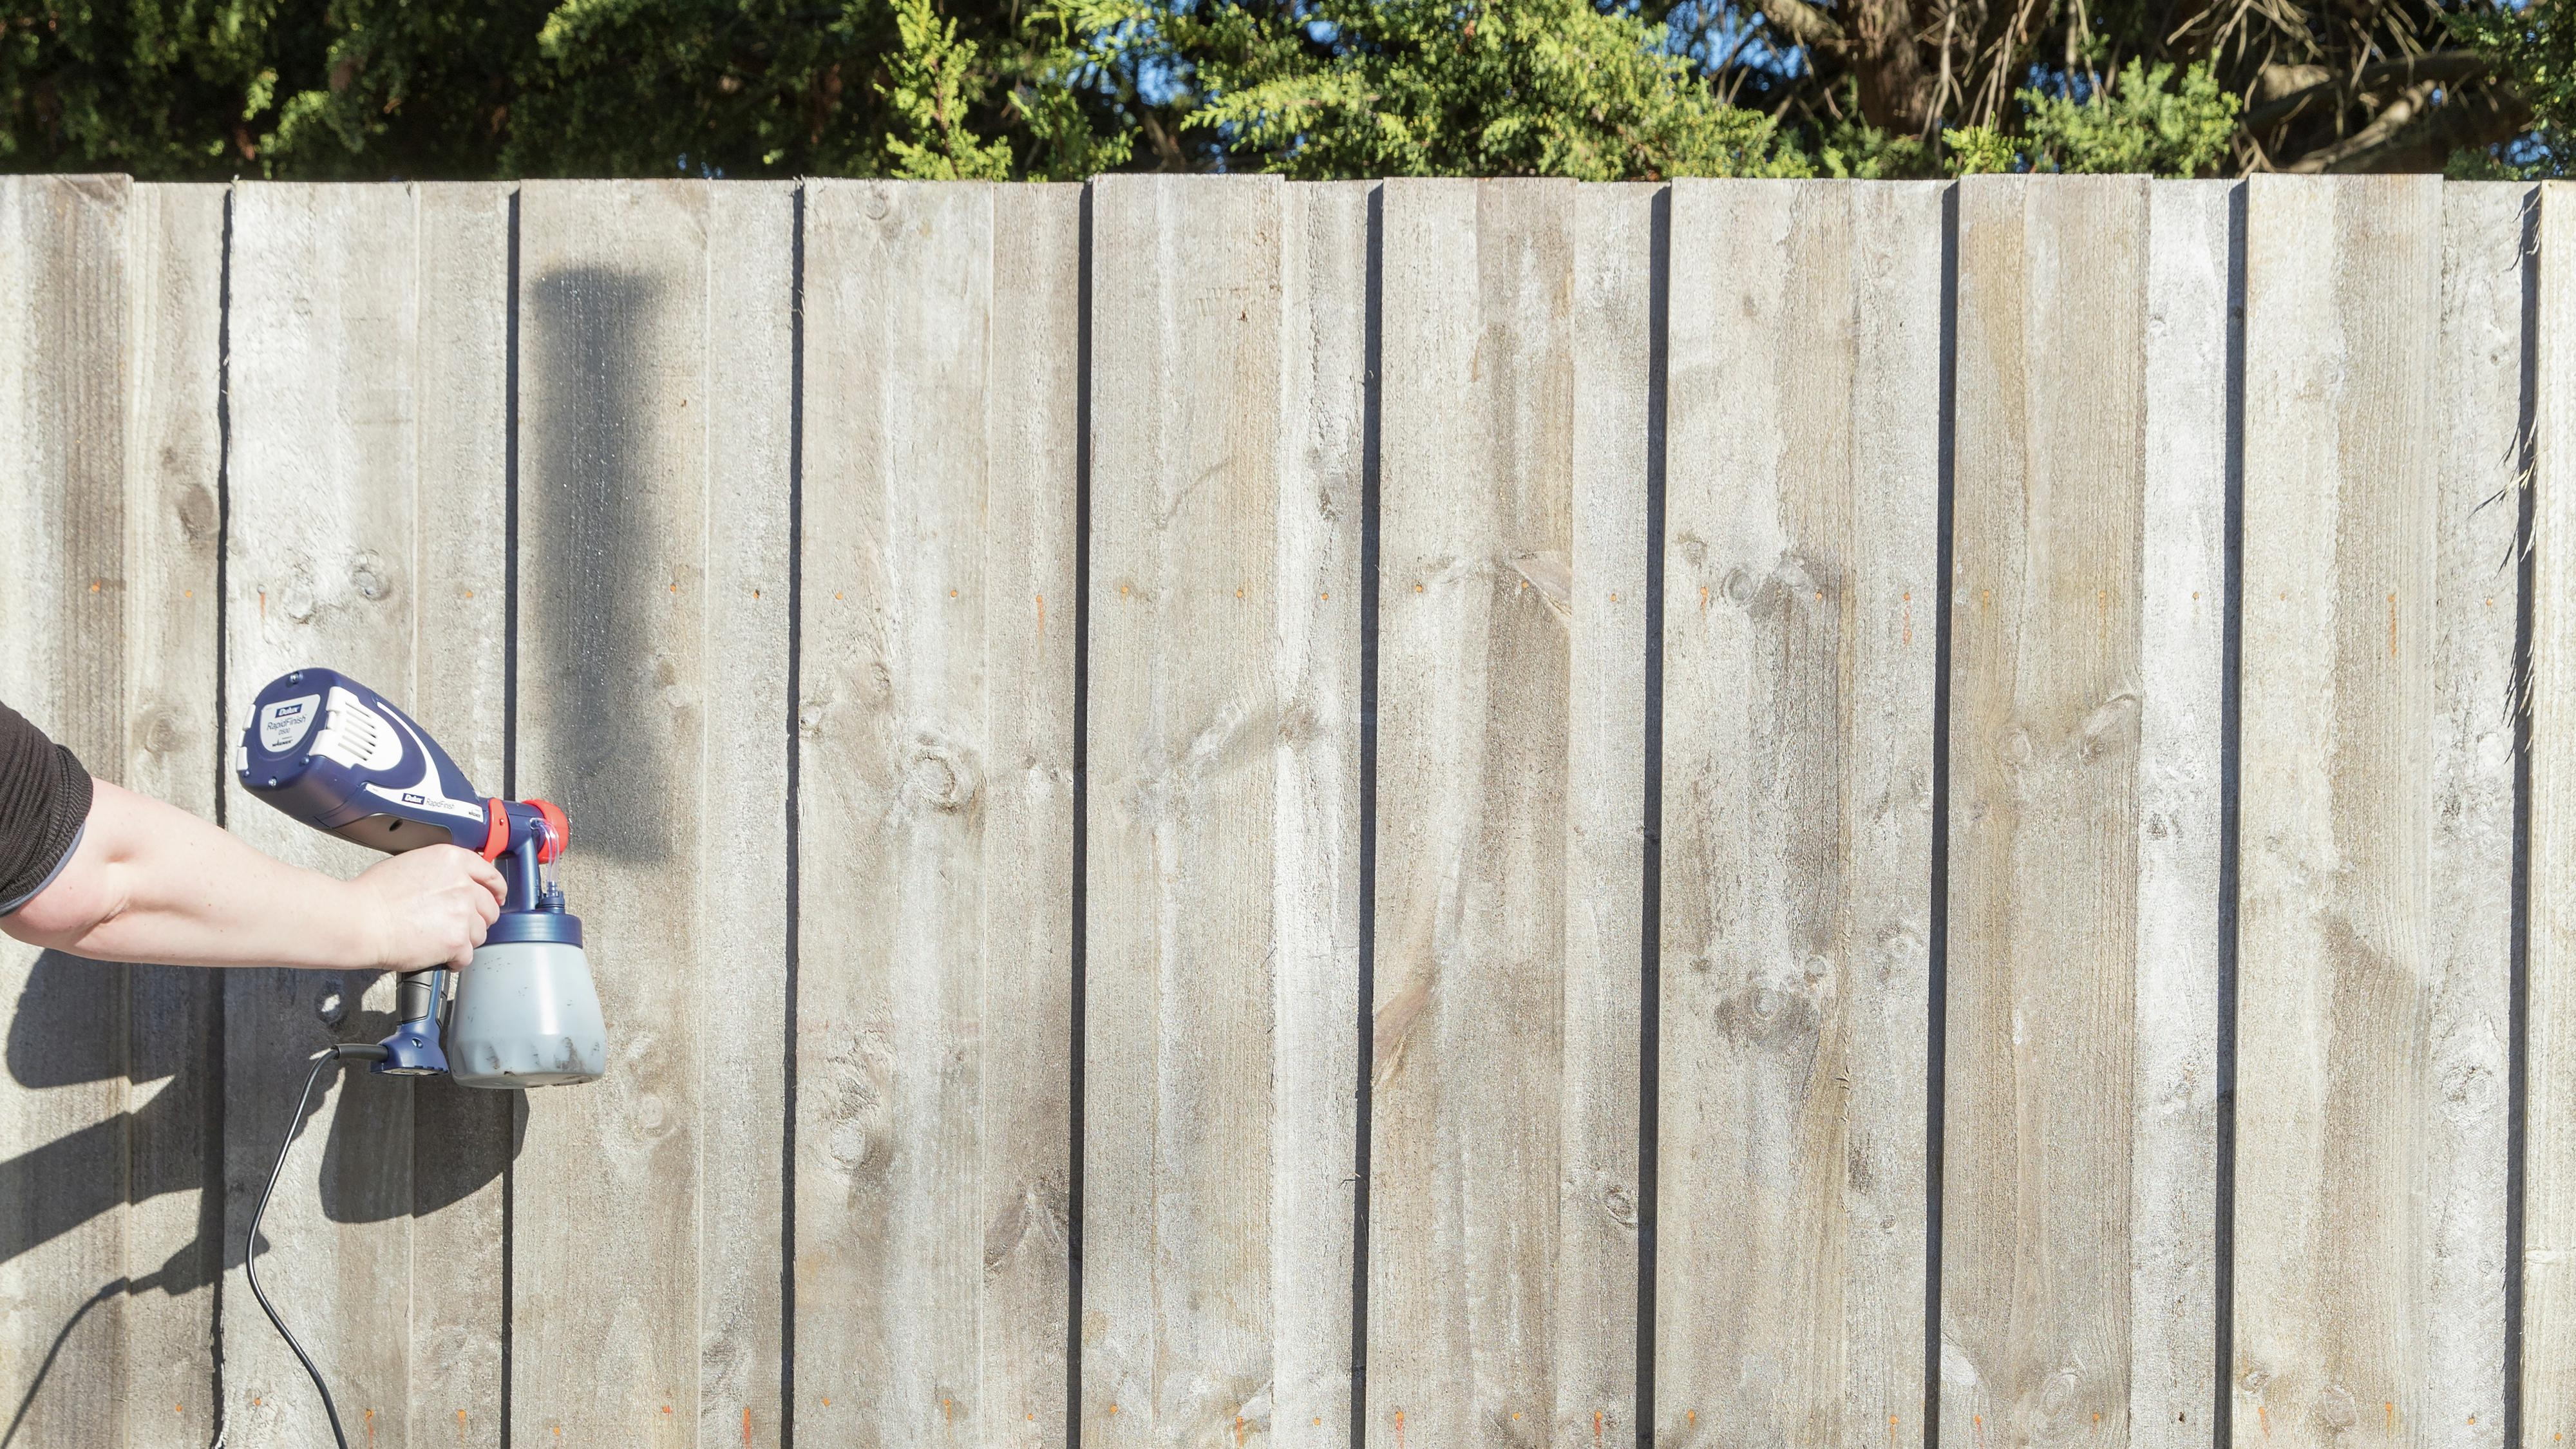 Person spray painting a wooden fence.